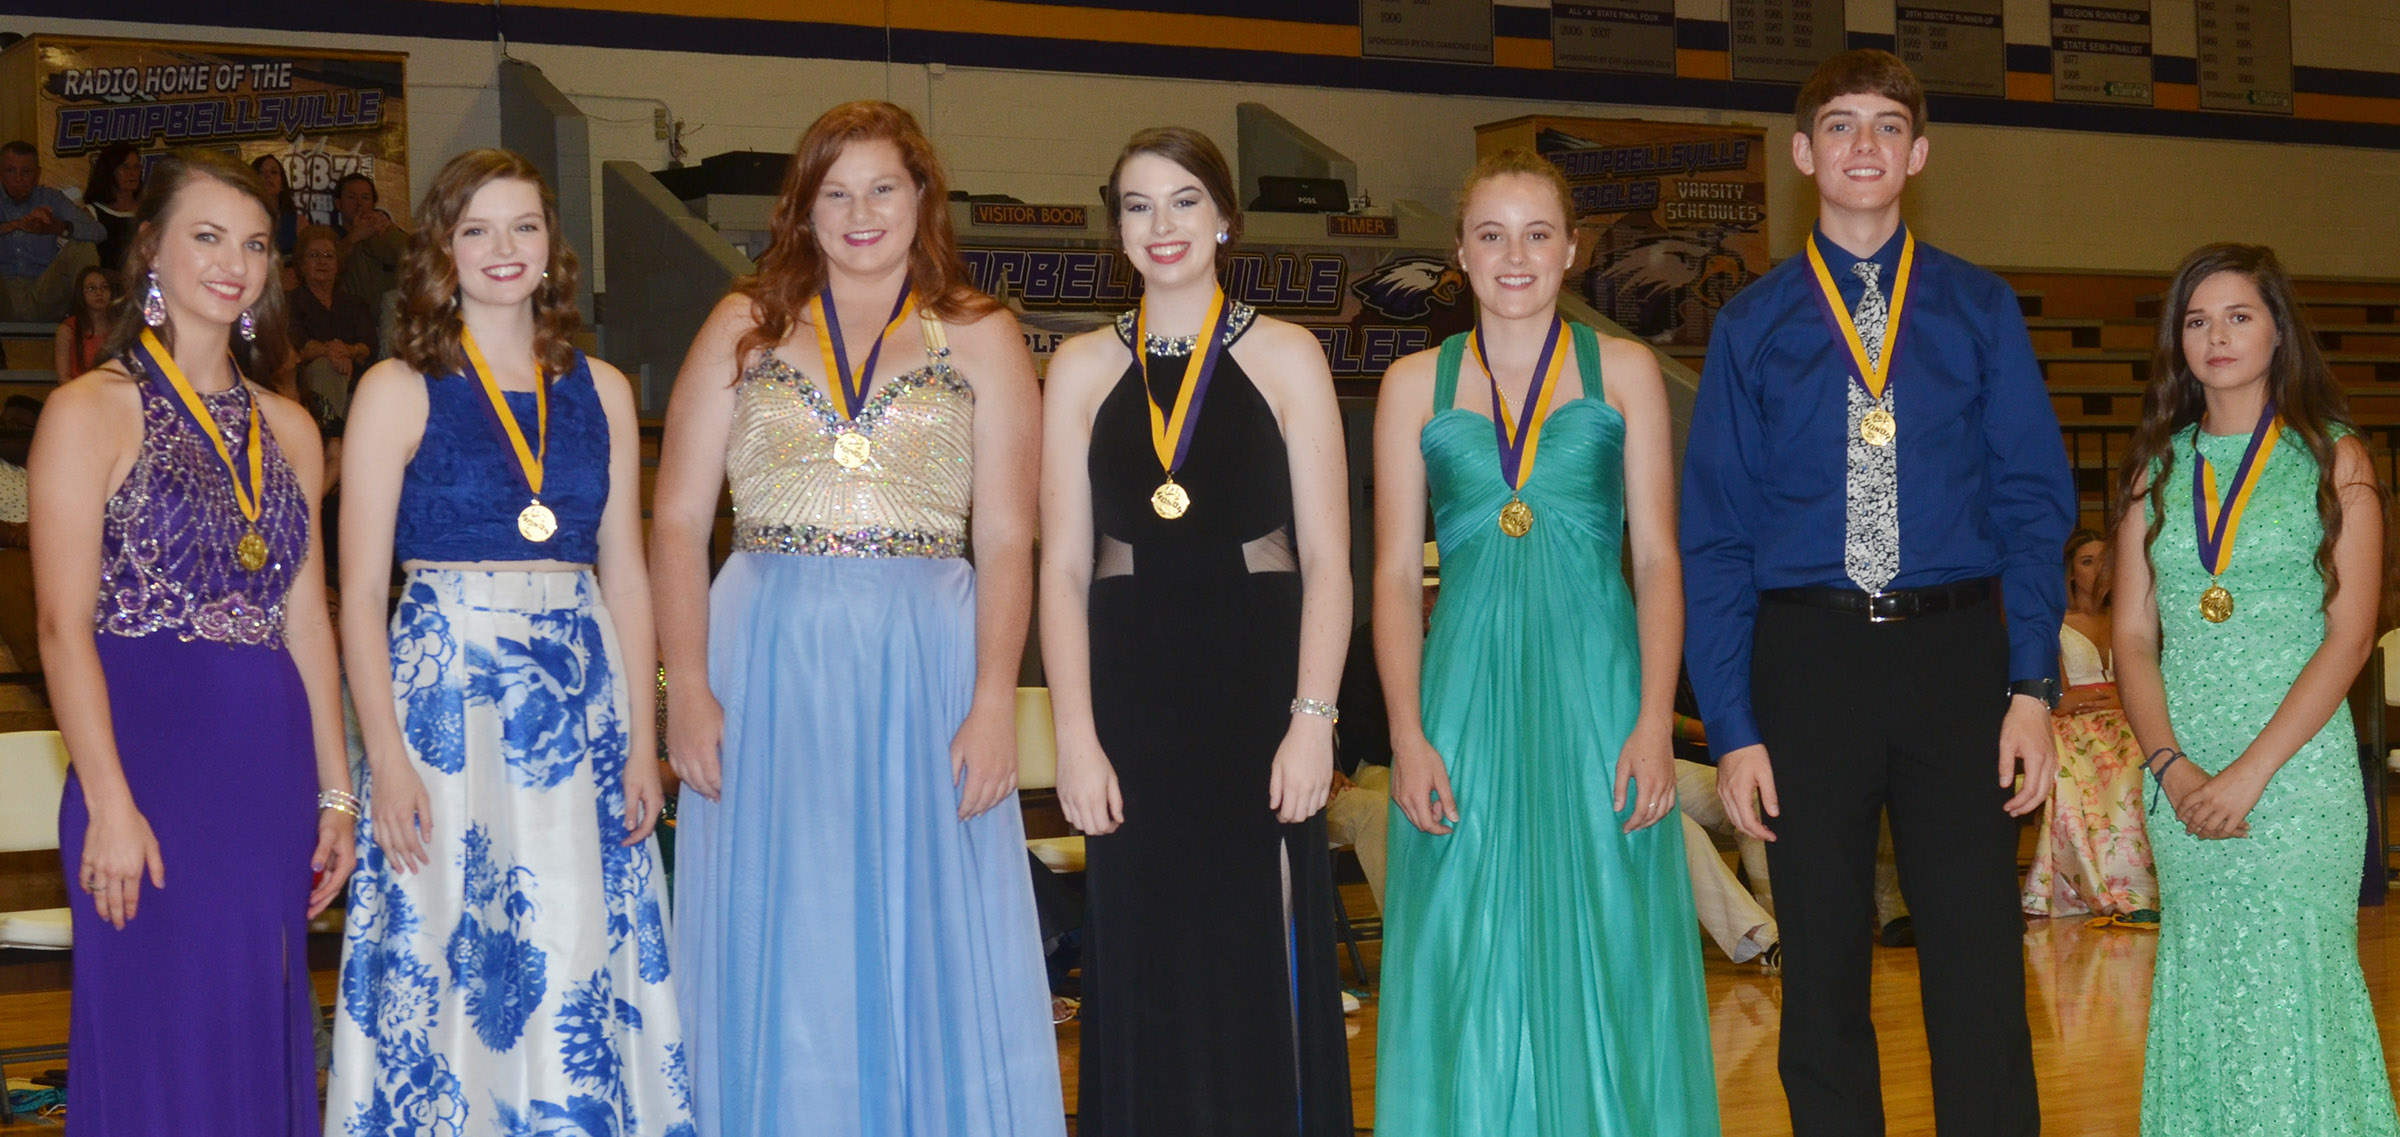 Receiving the Eagle award for having a GPA between 3.85 and 4.0 are, from left, Caylie Blair, Blair Lamb, Mallory Haley, Laura Lamb, Caroline McMahan, Murphy Lamb and Shauna Jones.